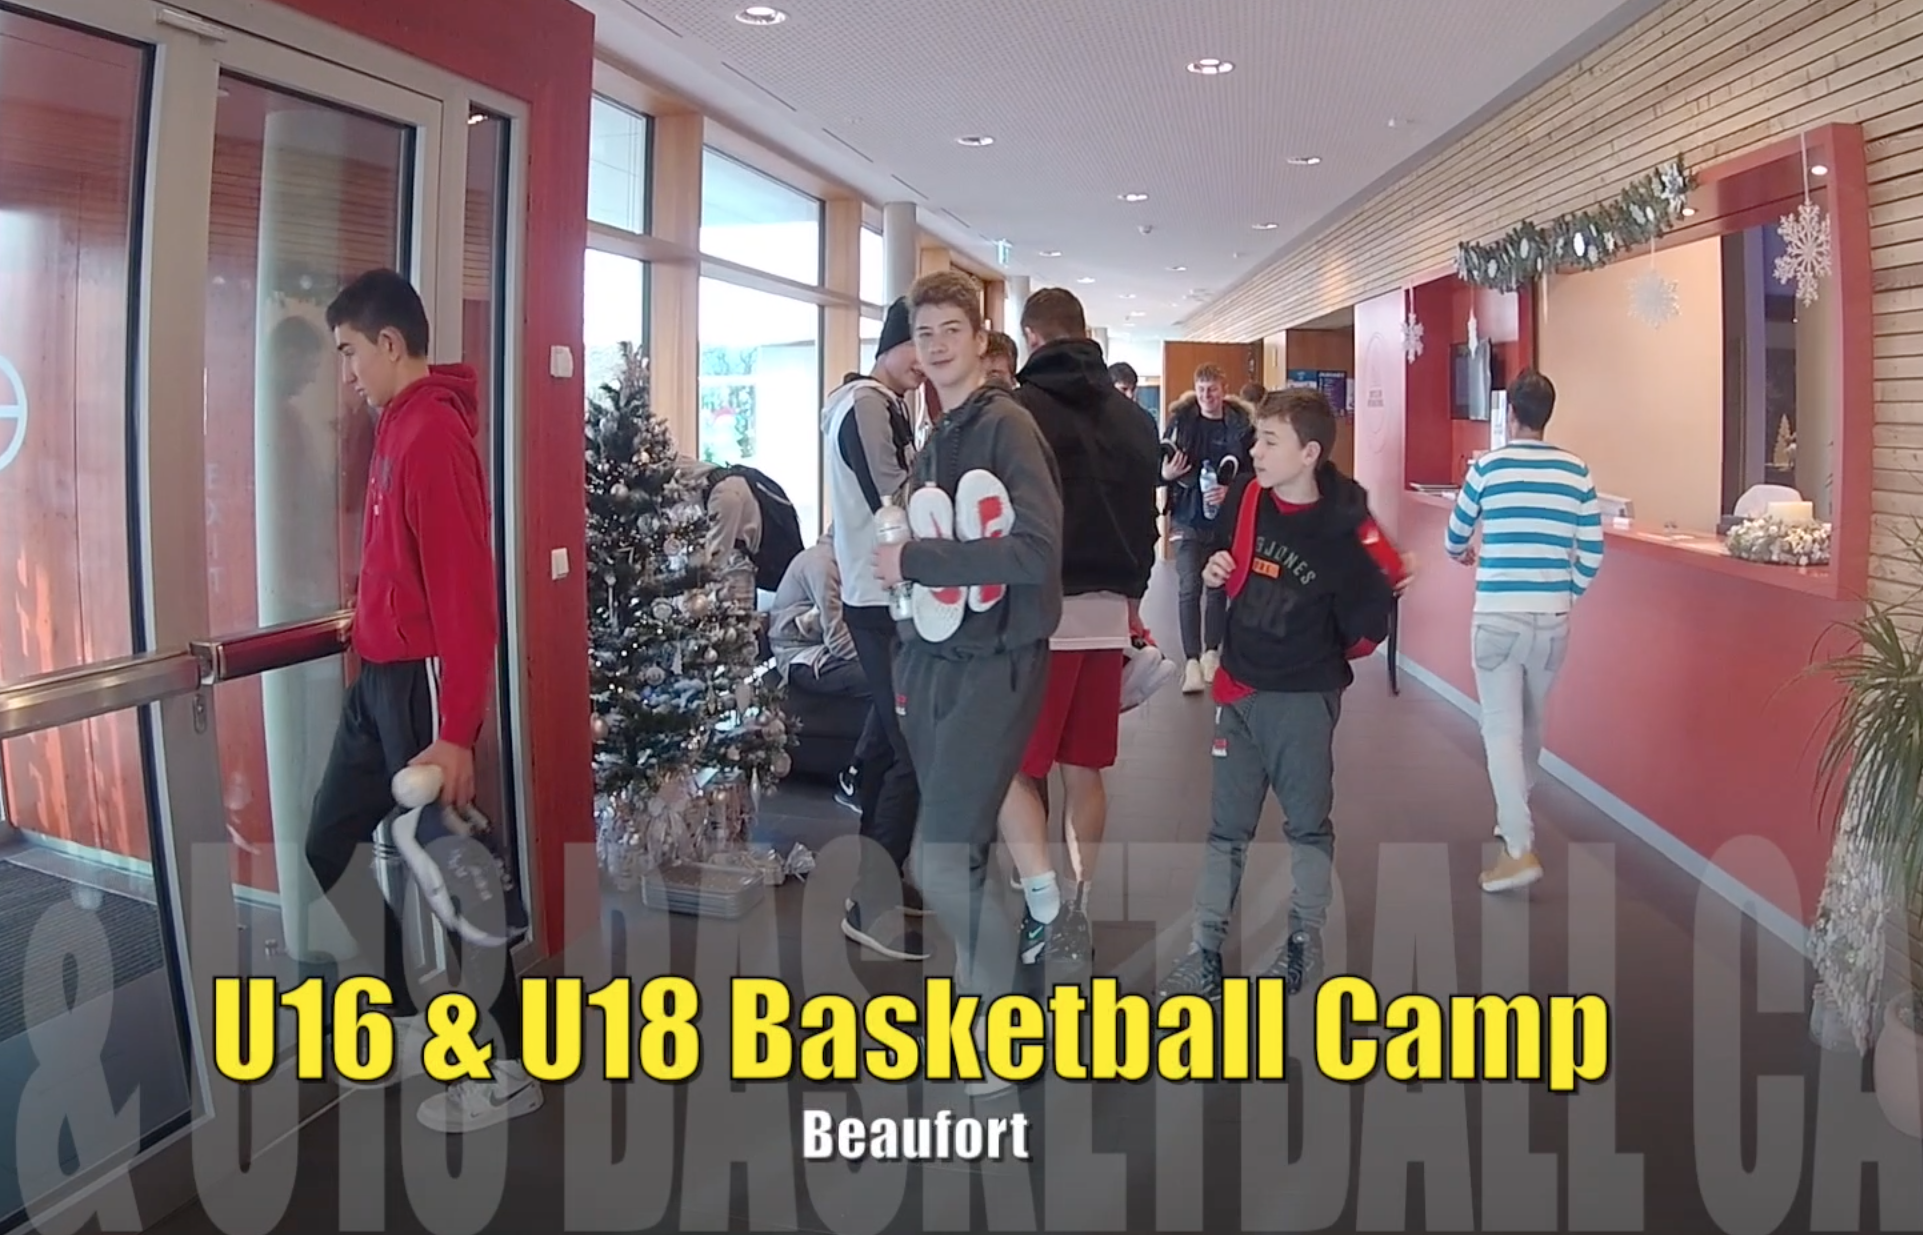 Pikes U16 & U18 Basketballcamp in Beaufort